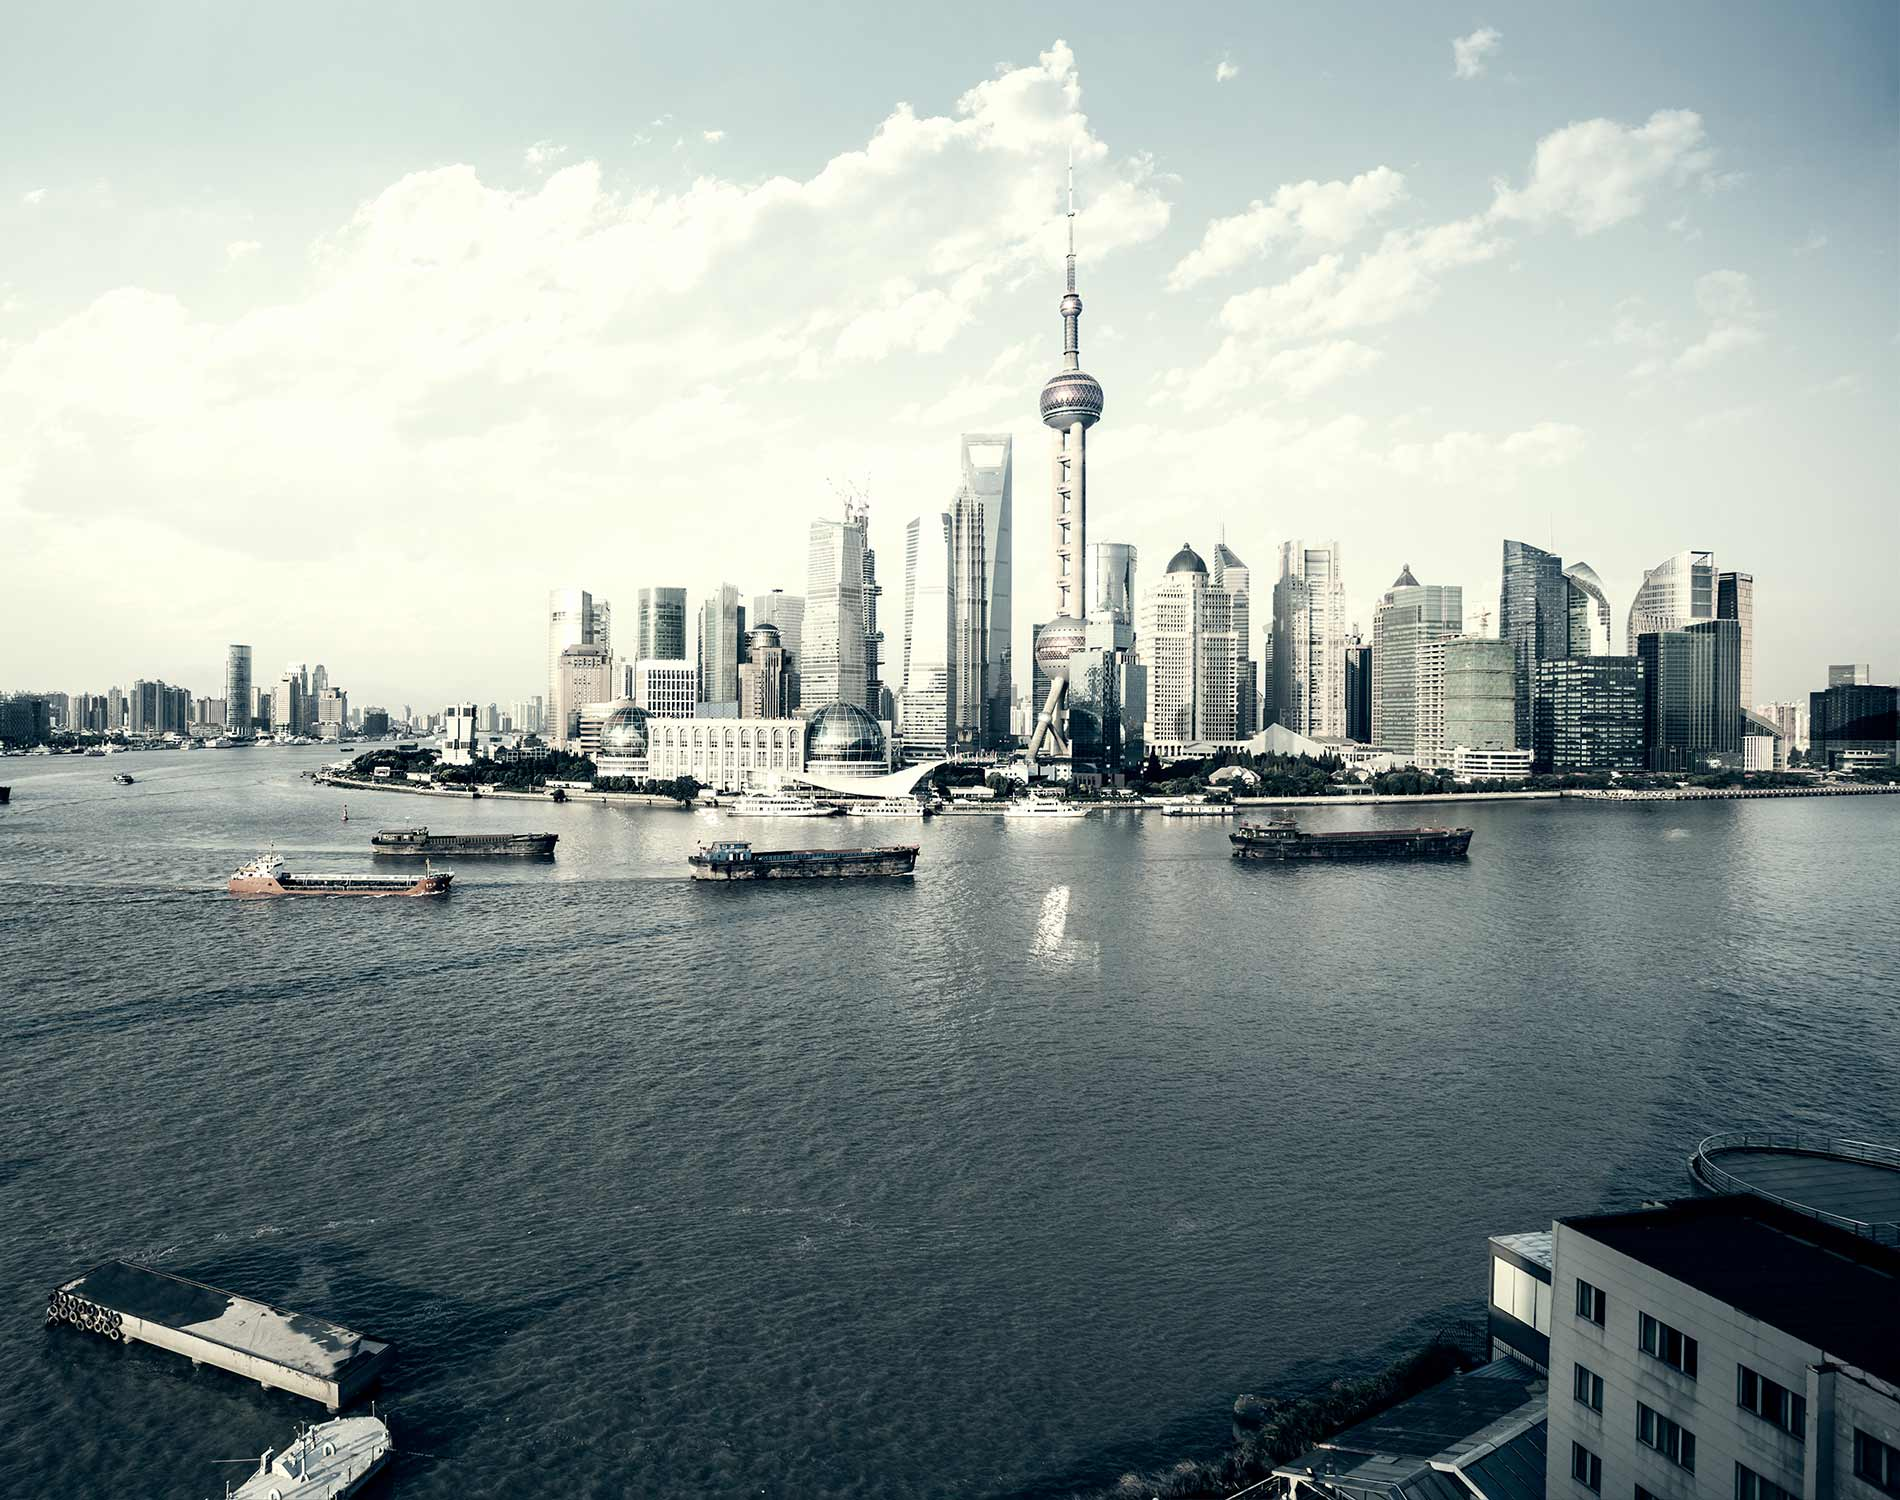 /-/media/images/website/background-images/offices/shanghai/shanghai.jpg